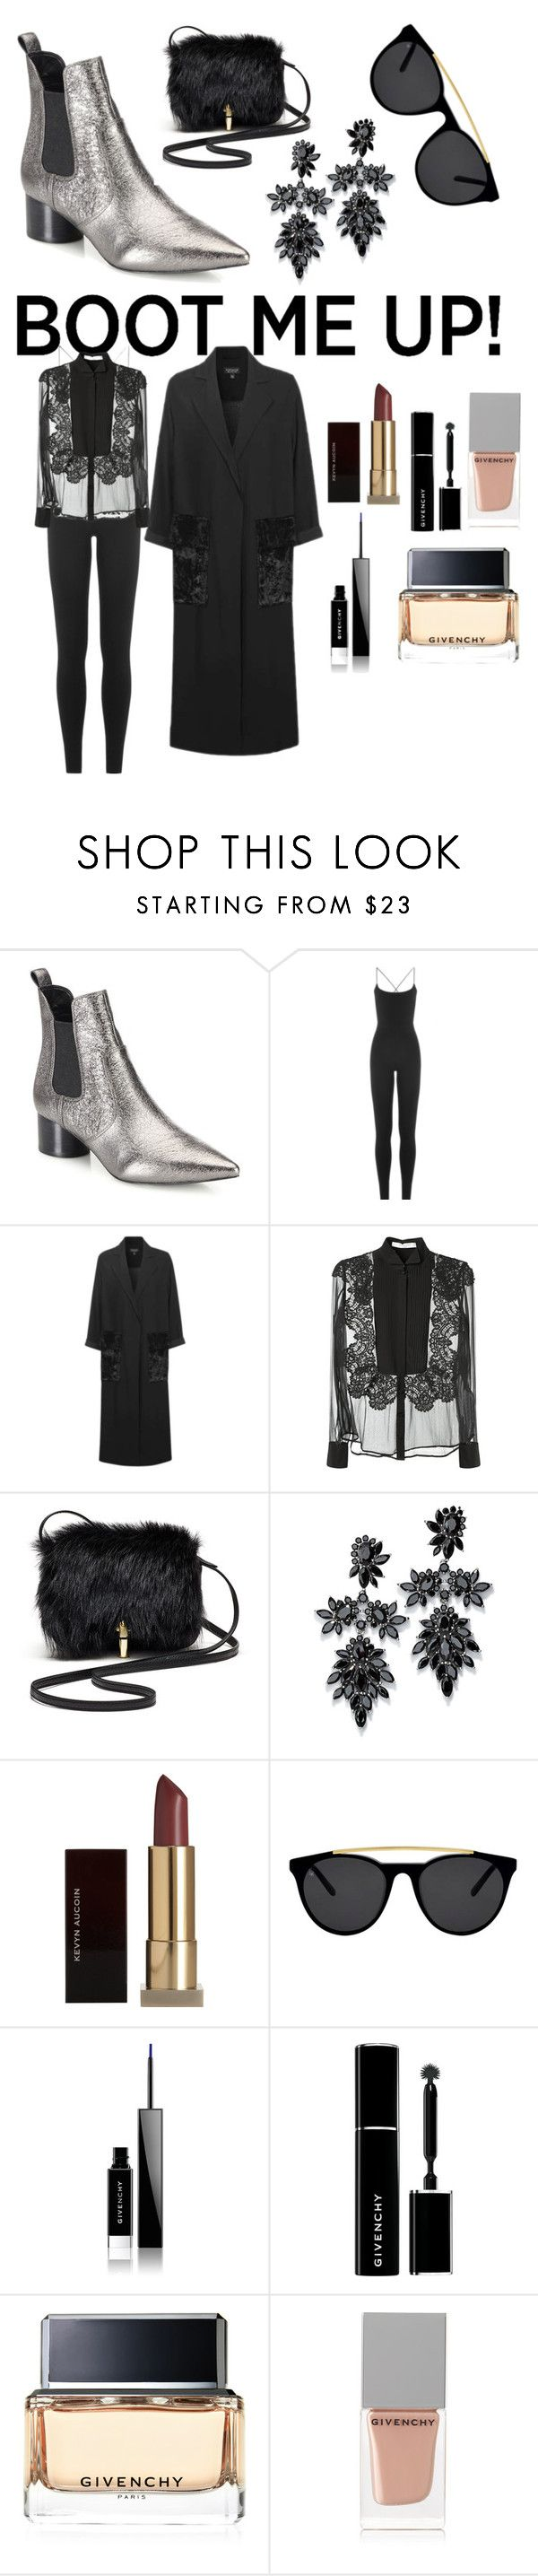 """Chelsea Boots- Baldwin"" by rbcashyu ❤ liked on Polyvore featuring Kendall + Kylie, Valentino, Topshop, Givenchy, Elizabeth and James, Fallon, Kevyn Aucoin and Smoke x Mirrors"